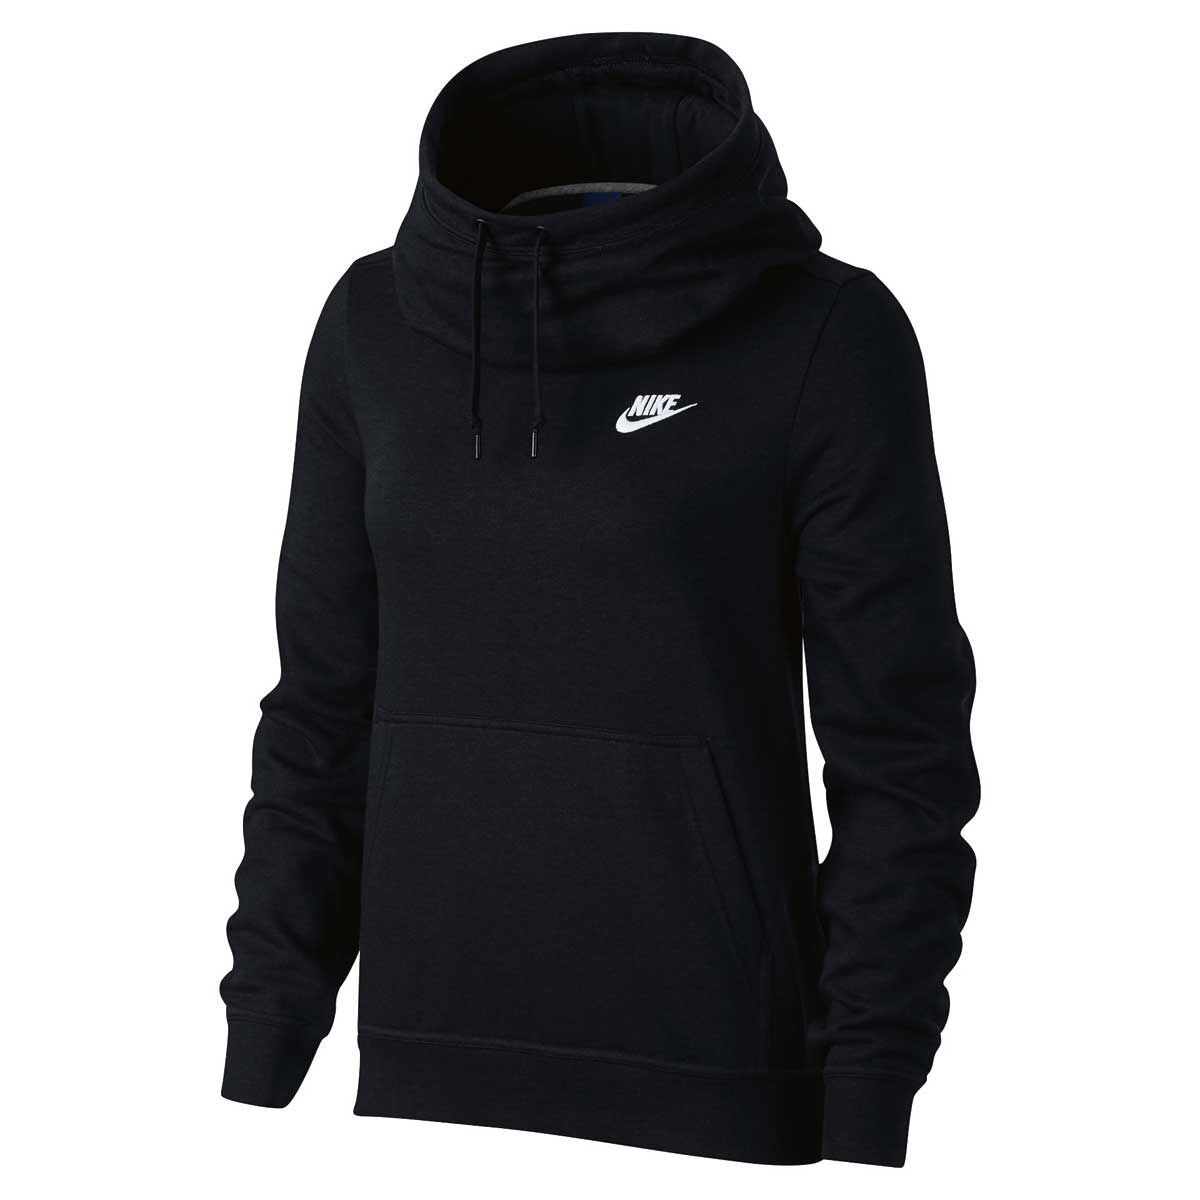 Adidas Men's Small Black Funnel Neck Hoodie